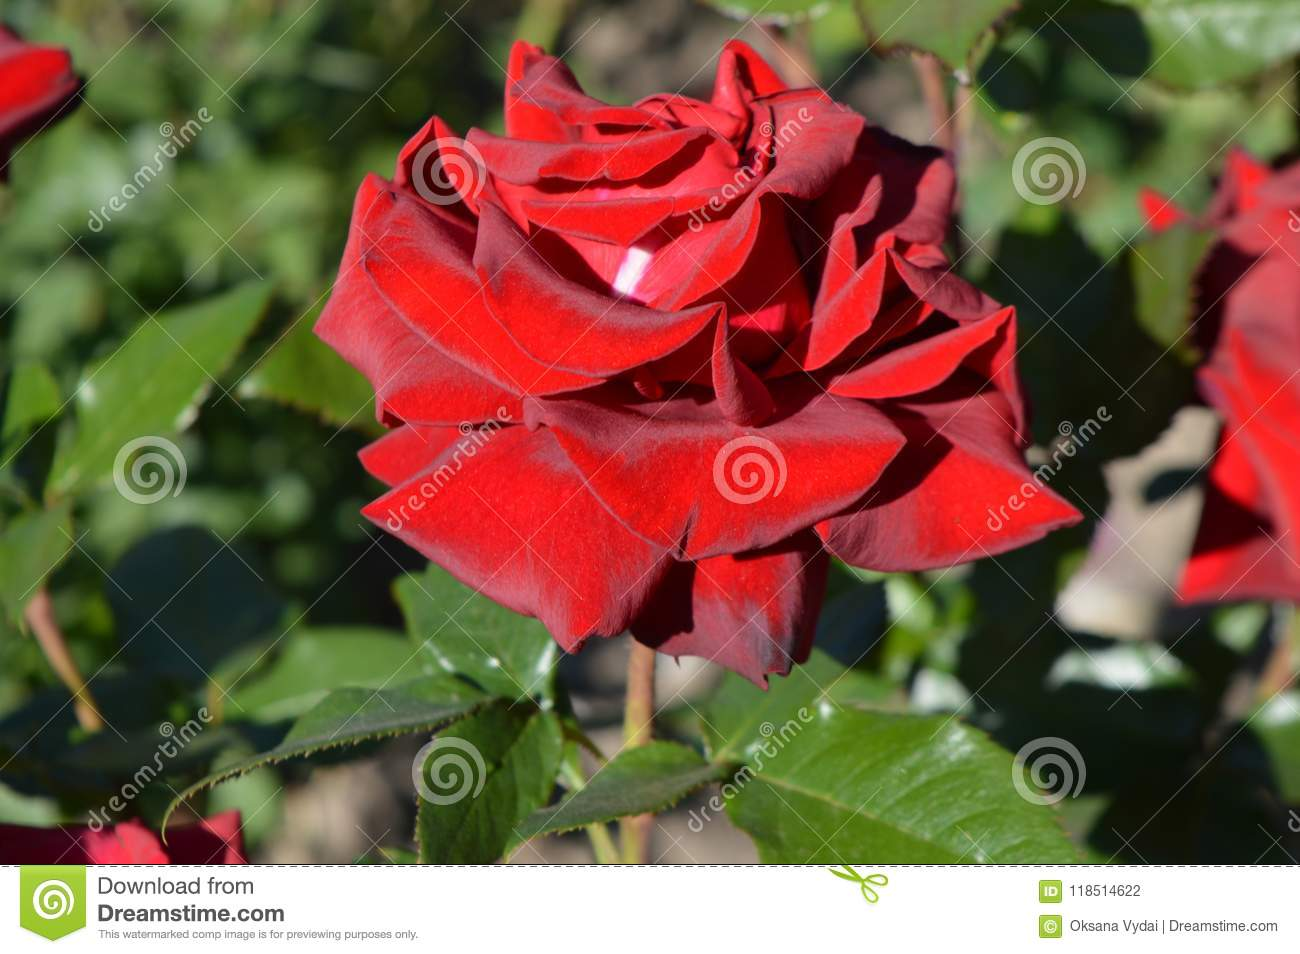 Red rose a rose in the garden stock photo image of scent download red rose a rose in the garden stock photo image of scent izmirmasajfo